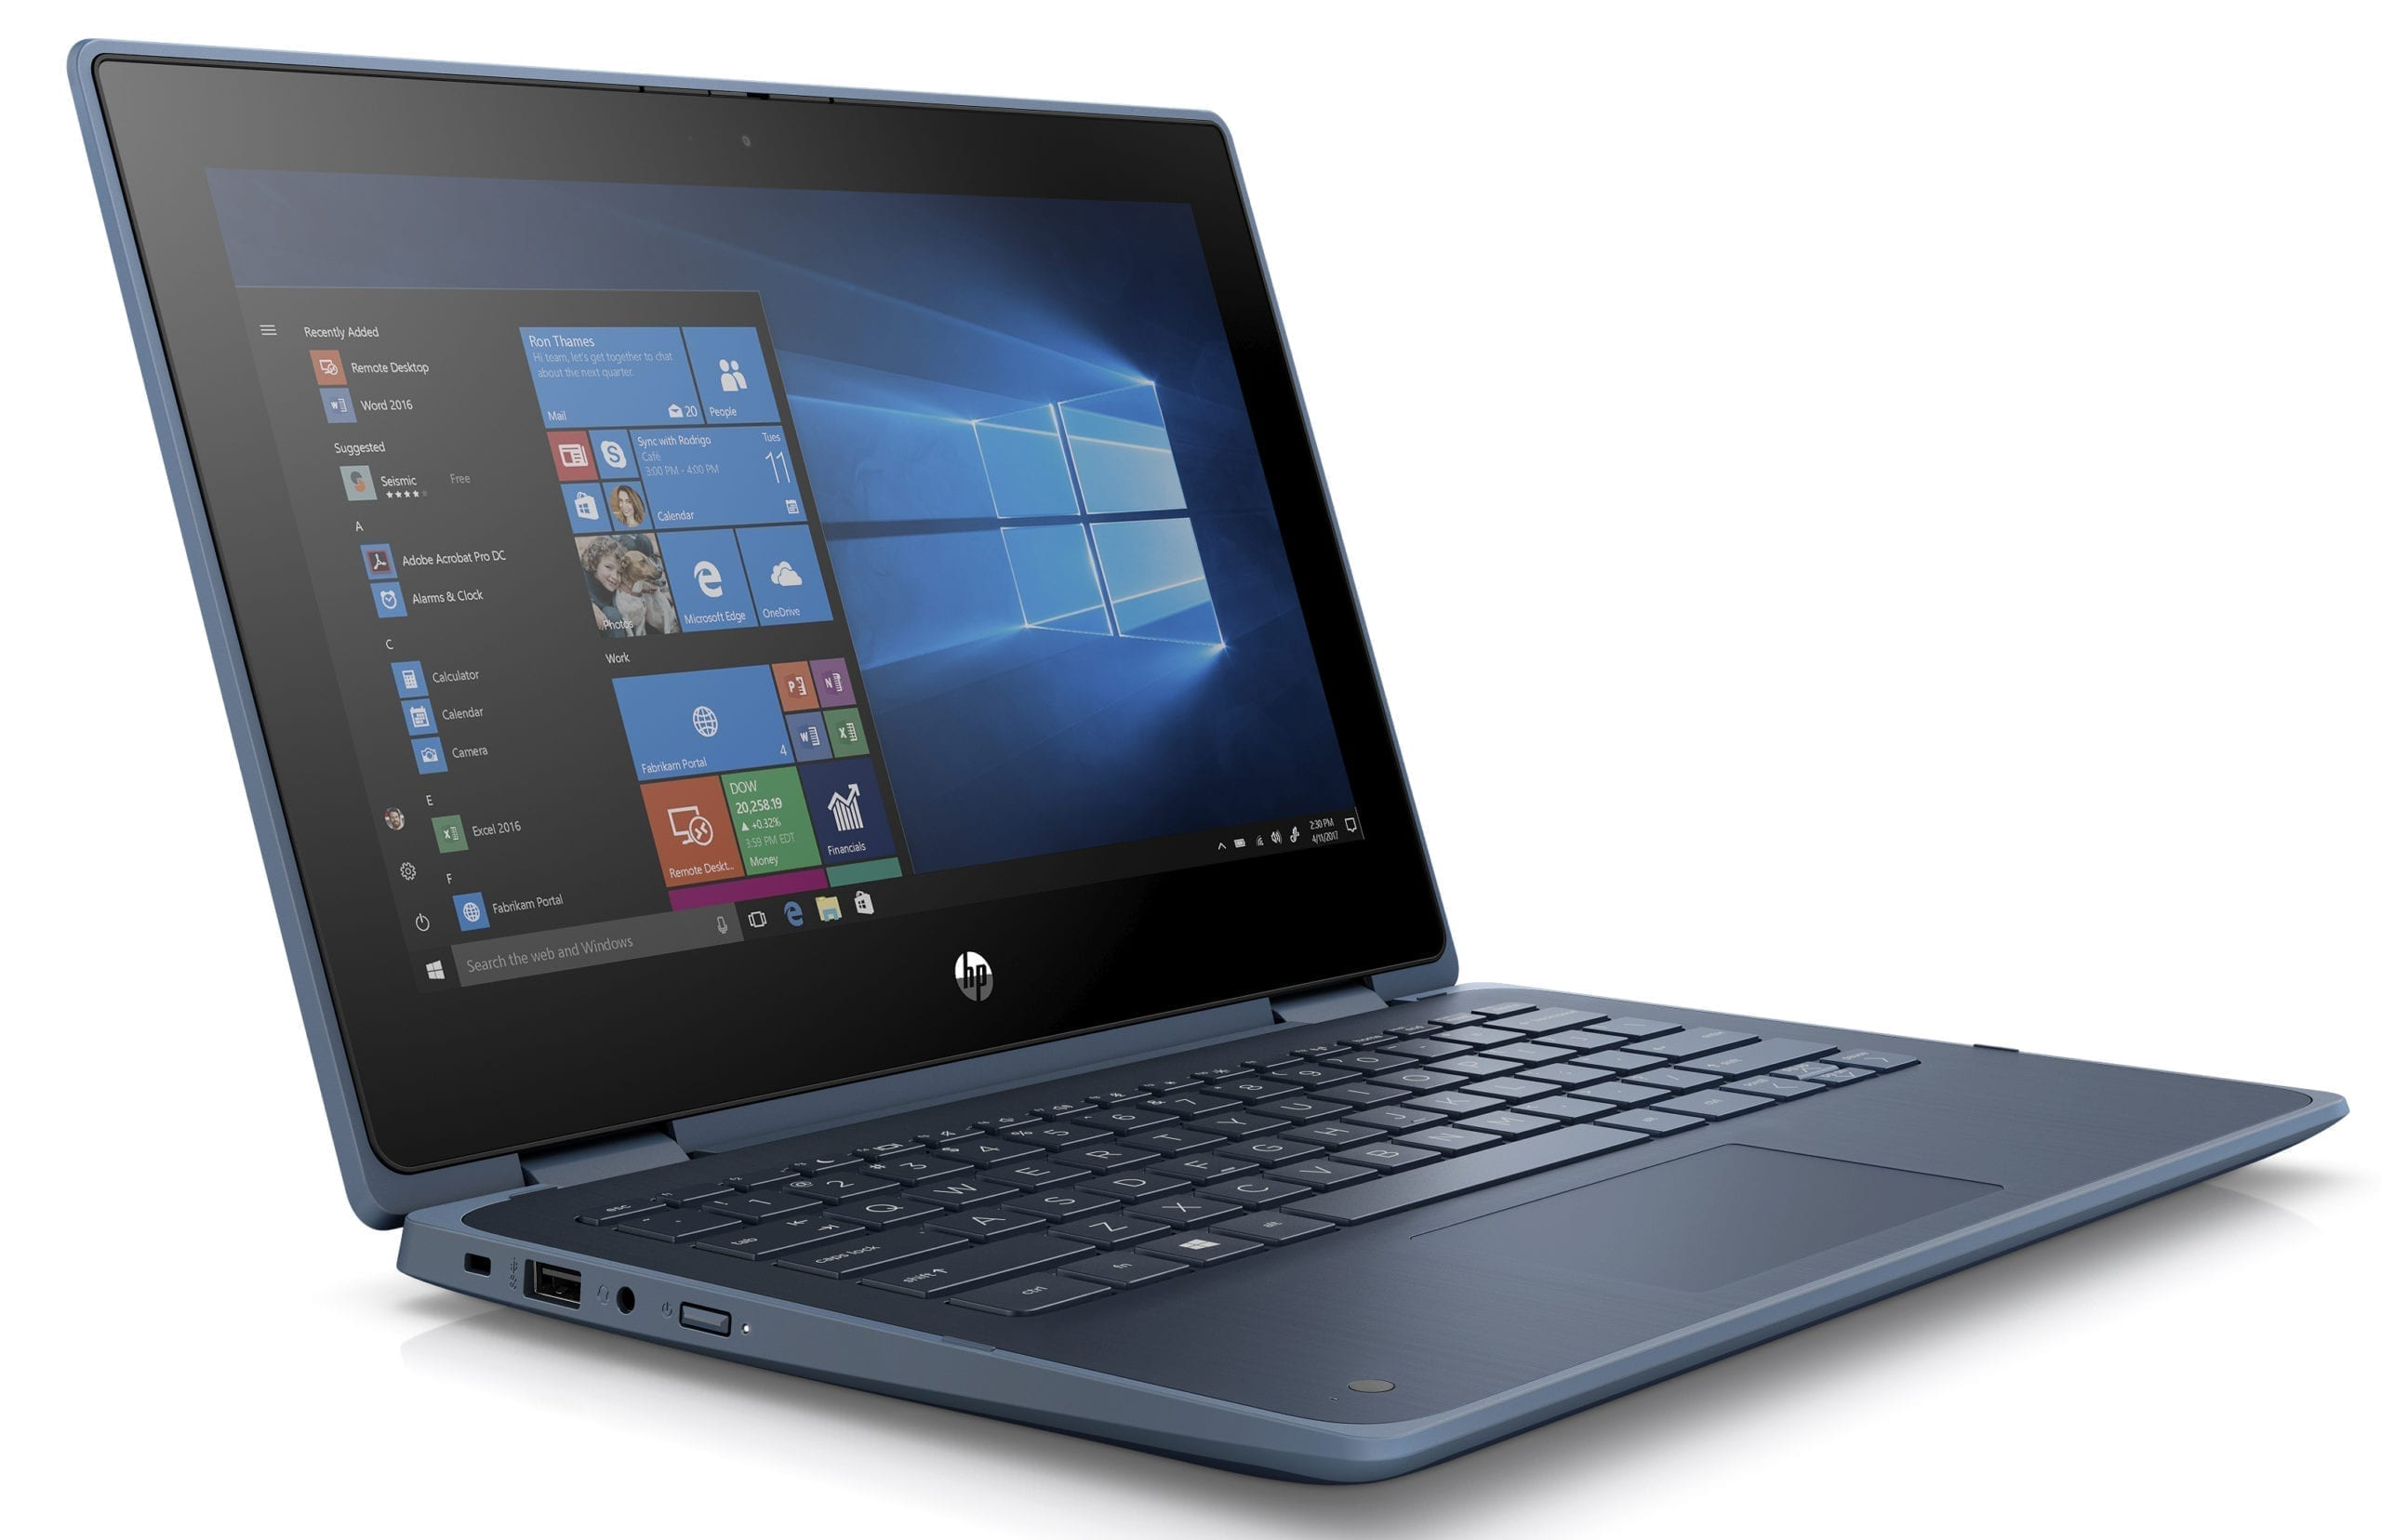 Image of the new HP ProBook x360 11 Education Edition PC.